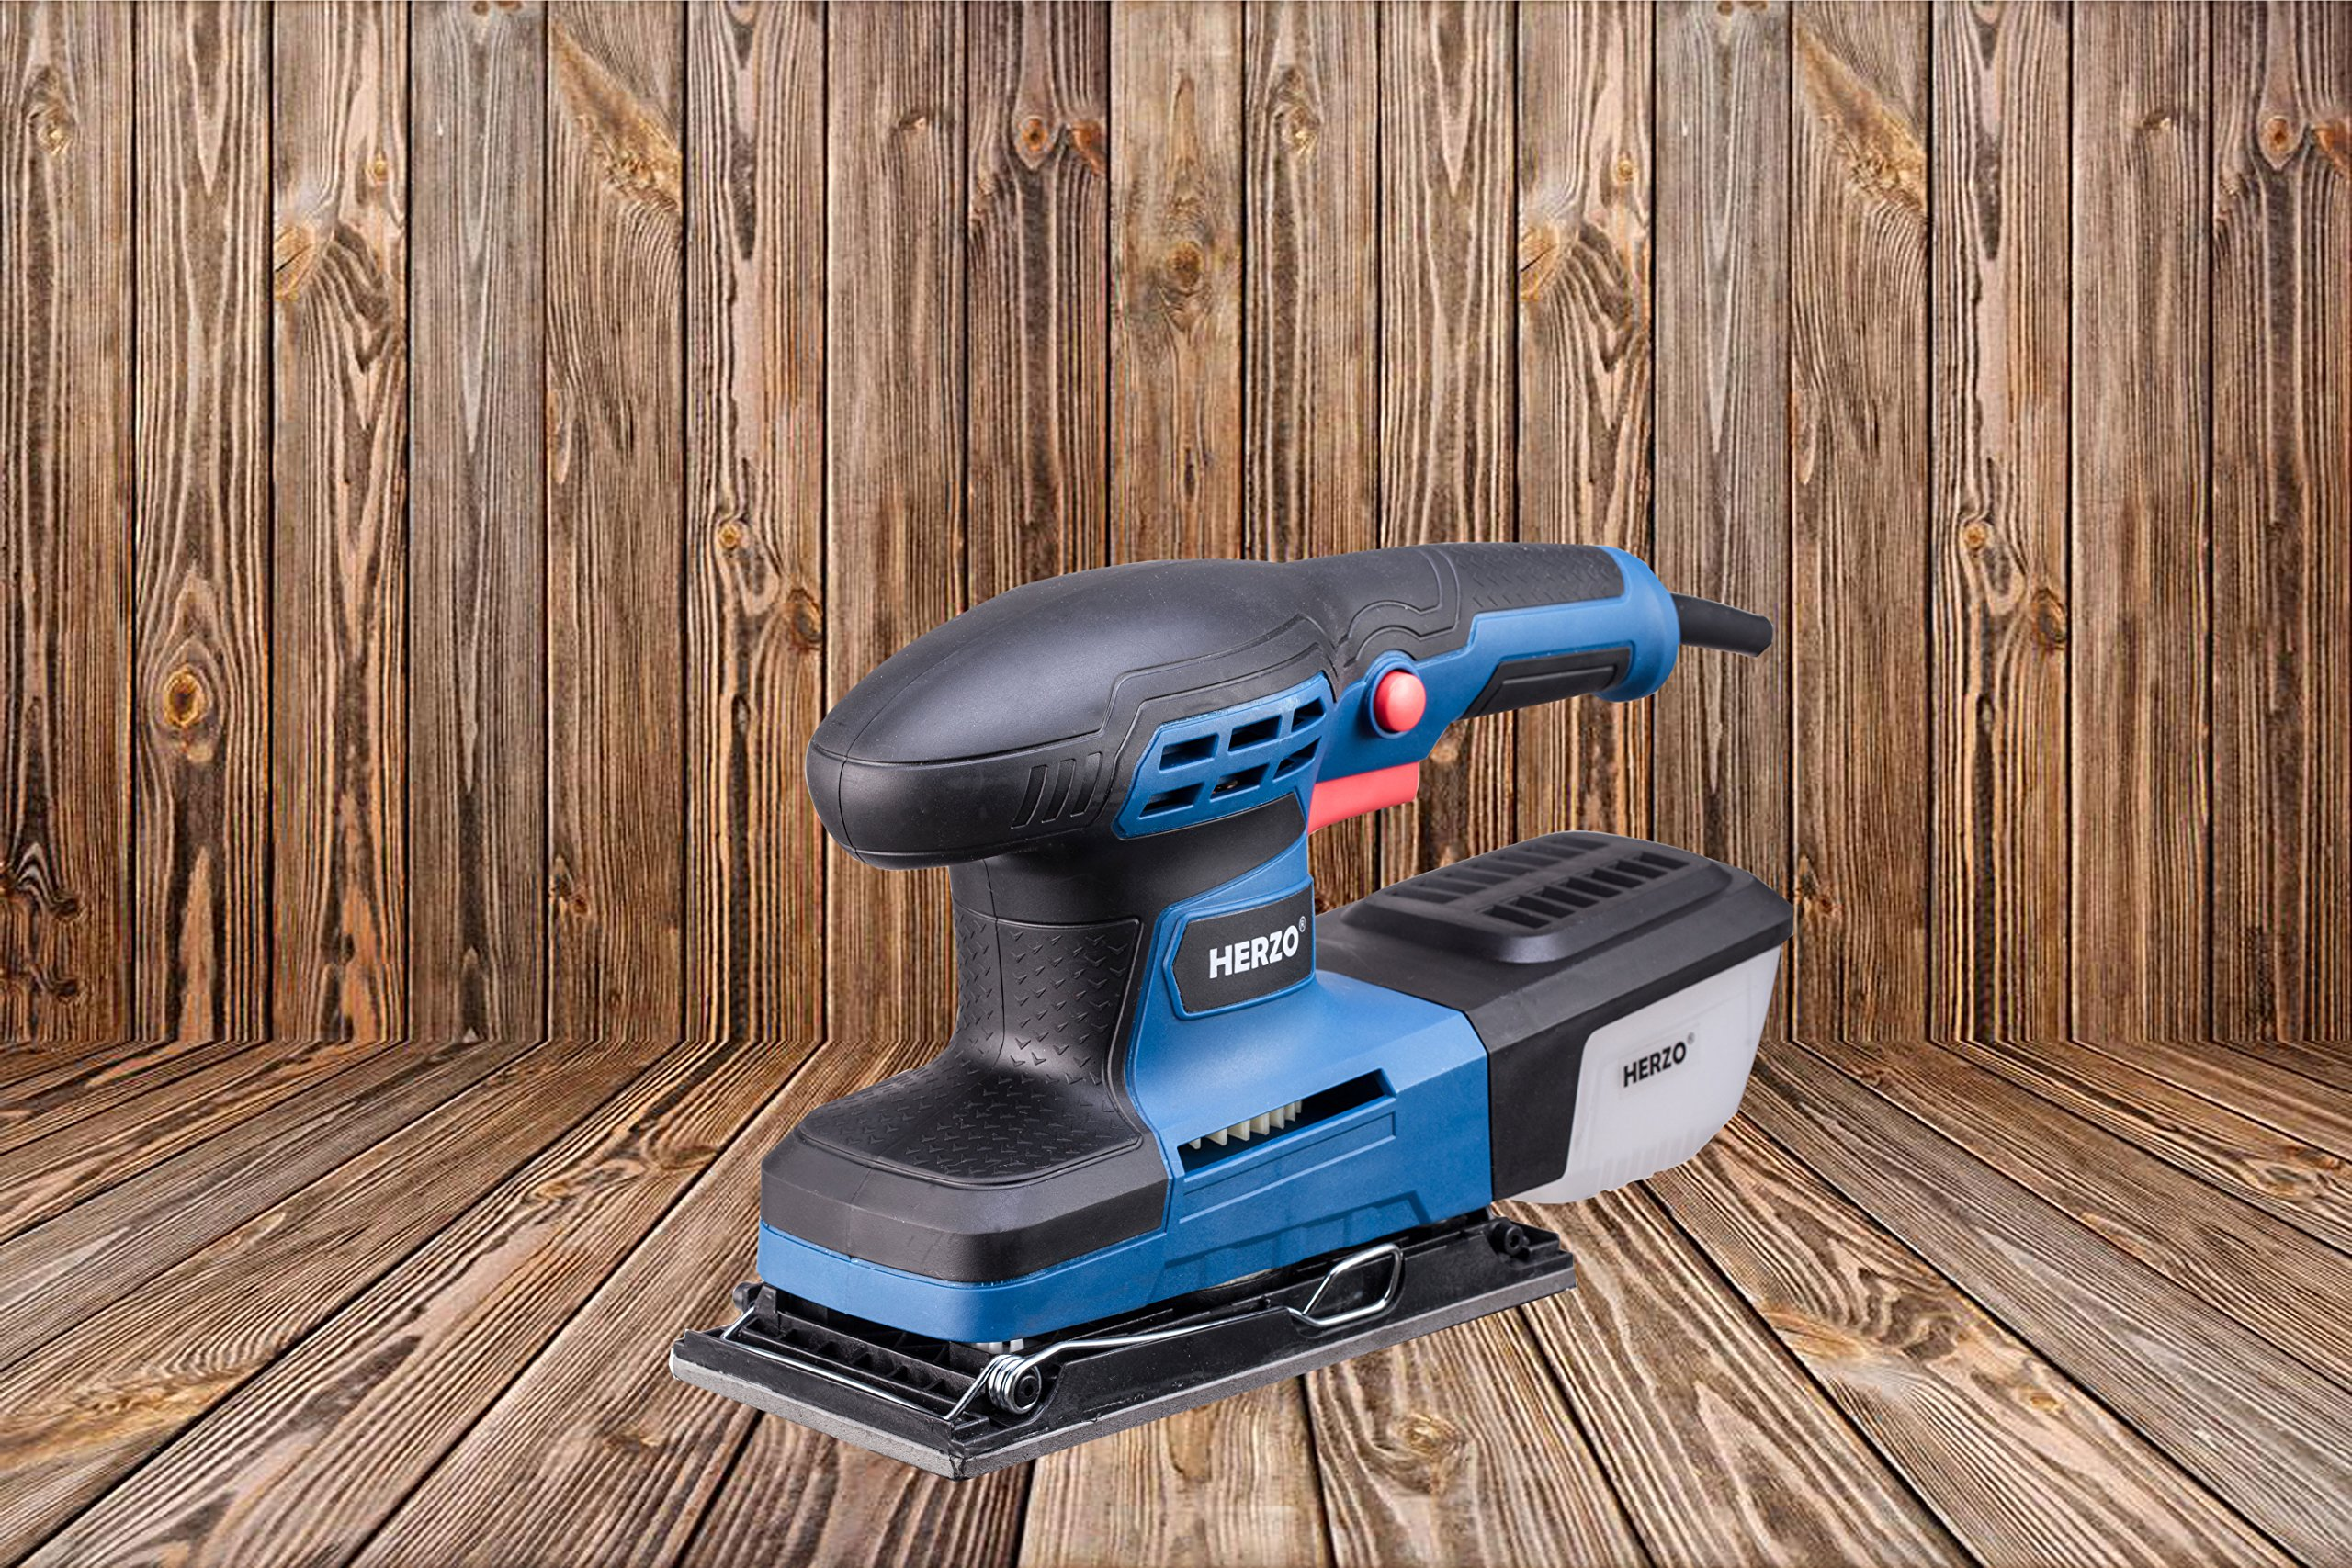 Sheet Sander HERZO 1/3 Finishing Sander with Self-Dust Collection Box, Hook-and-Loop Base Pad and 10 Pcs Sandpaper 2.2A by HERZO (Image #6)